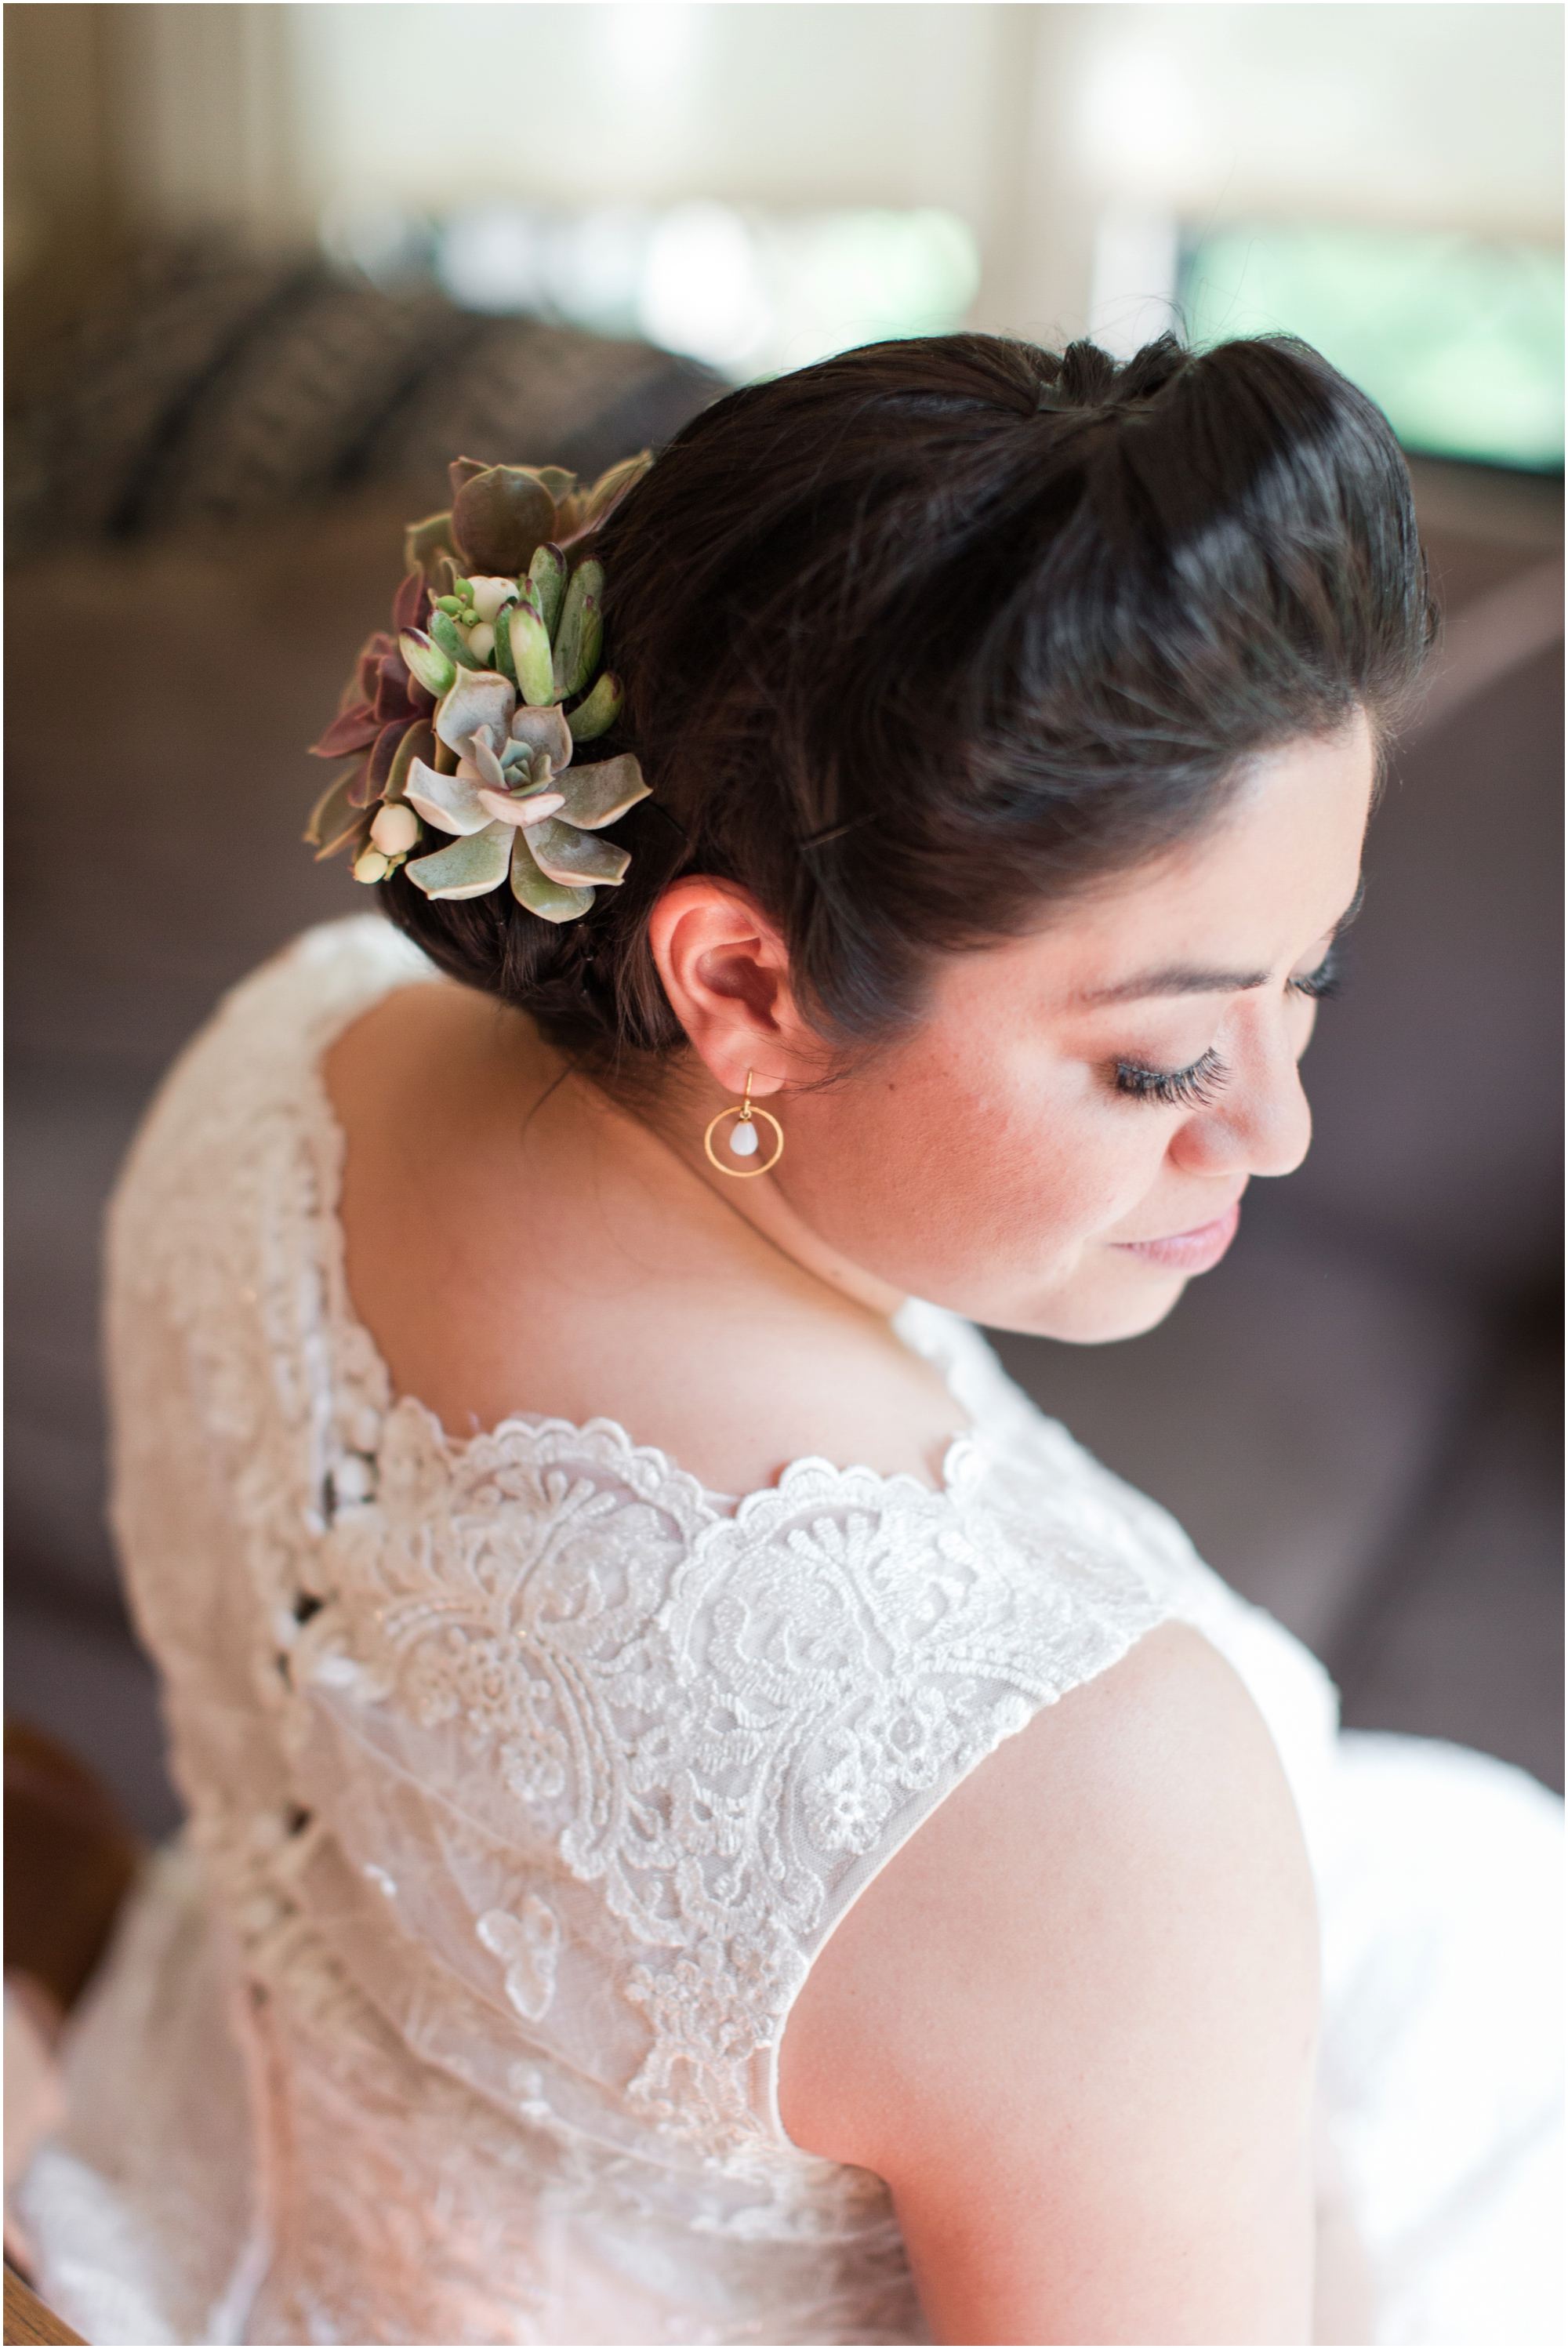 Garden wedding in Ellensburg, WA. Photos by Briana Calderon Photography based in the greater Seattle-Tacoma Area._1297.jpg